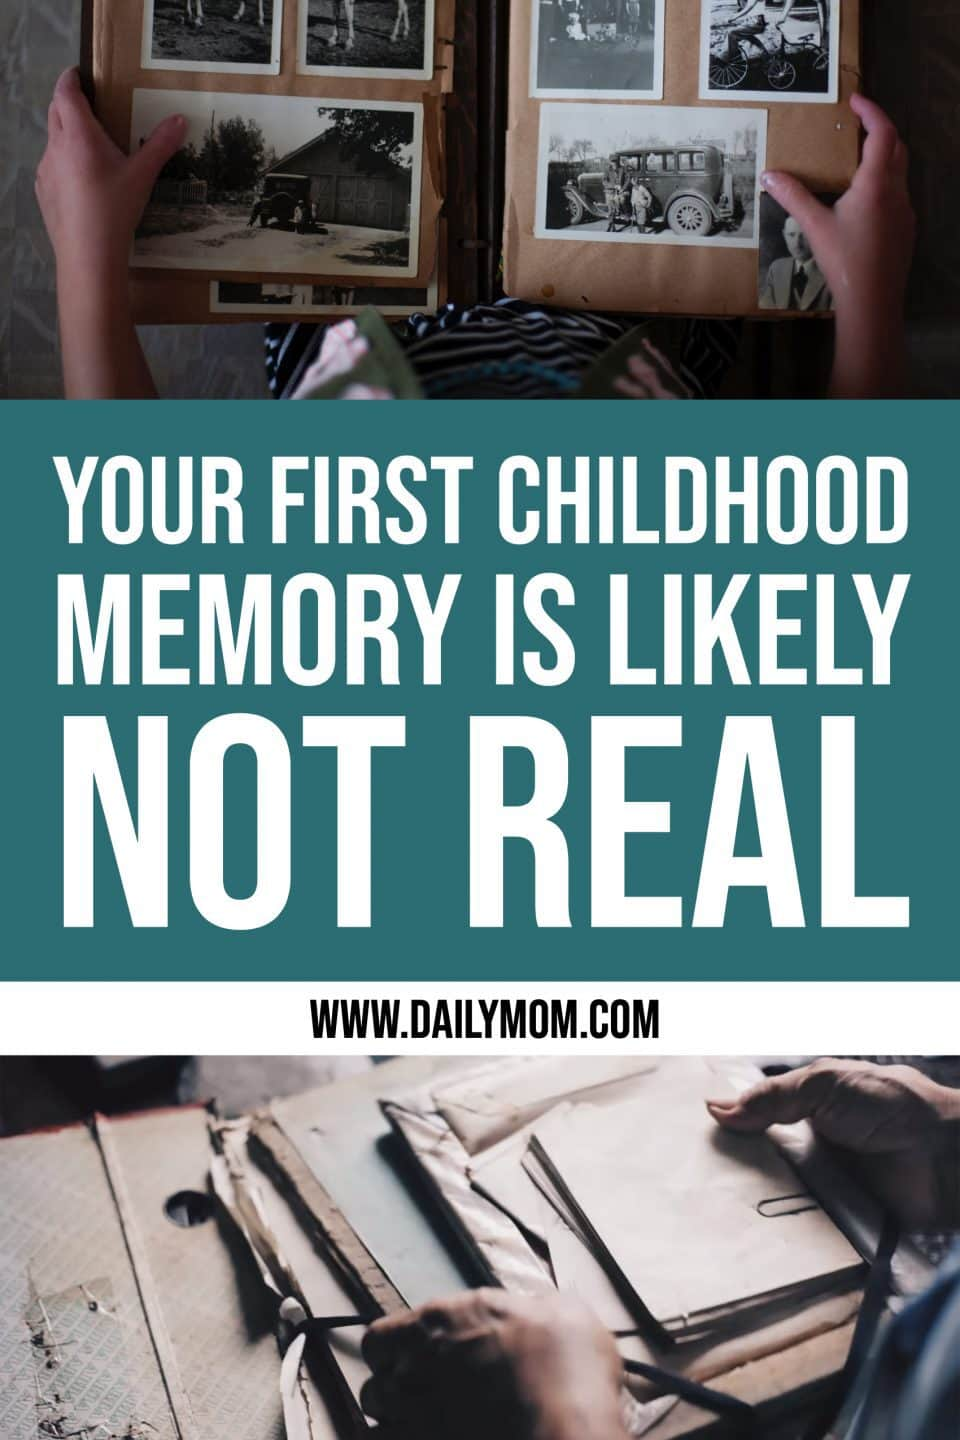 What You Remember As Your First Childhood Memory Is Likely Not Real.